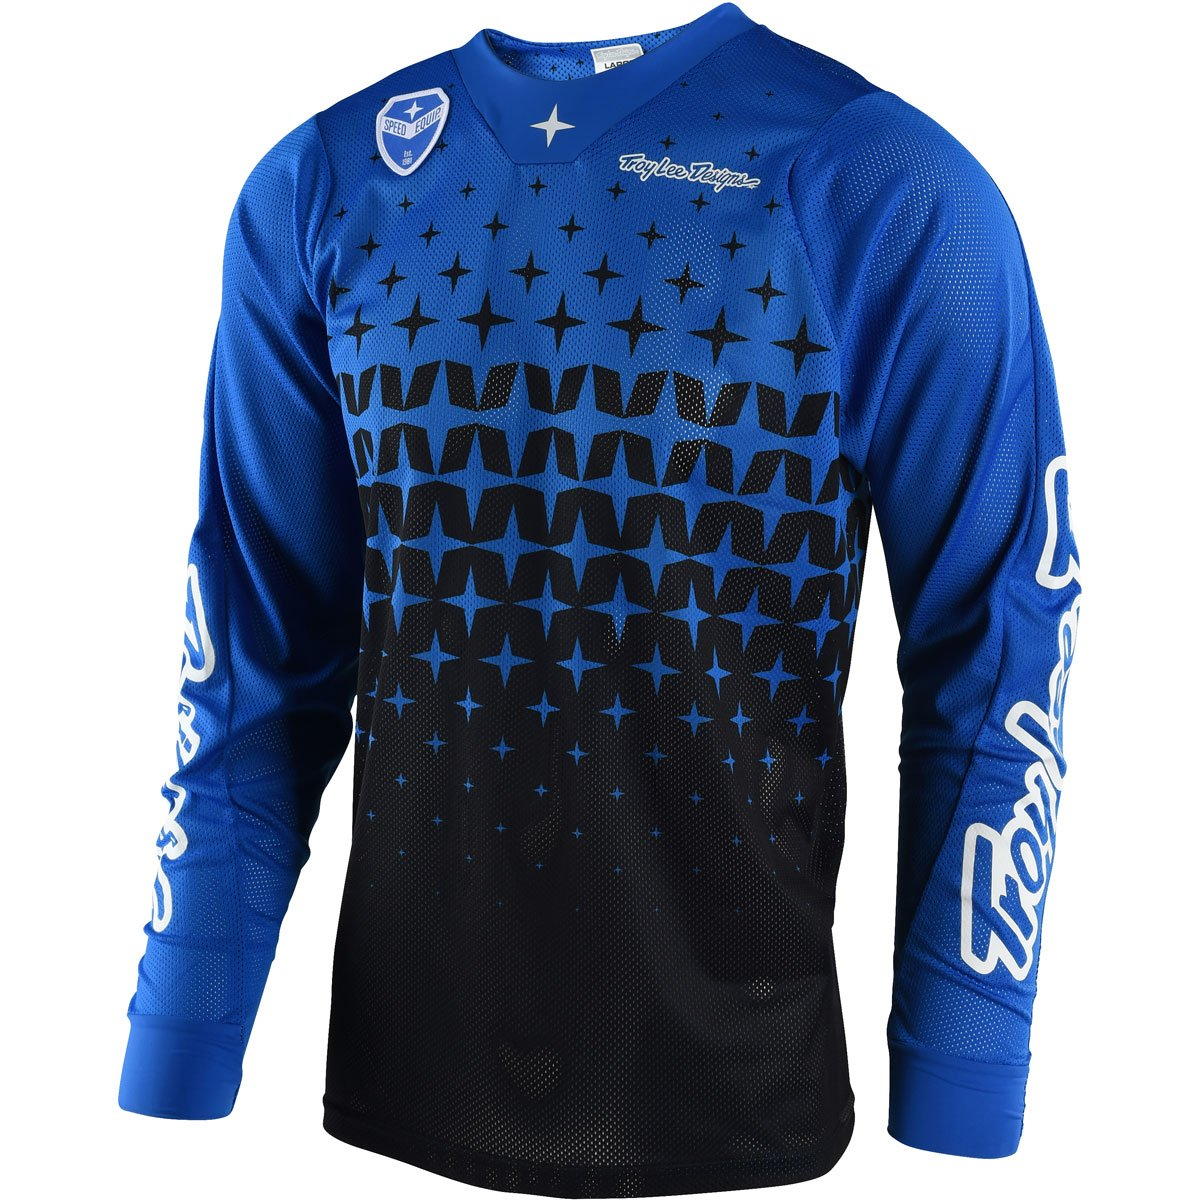 2018 Troy Lee Designs SE Air Megaburst Men's Jersey-Blue/Black-L